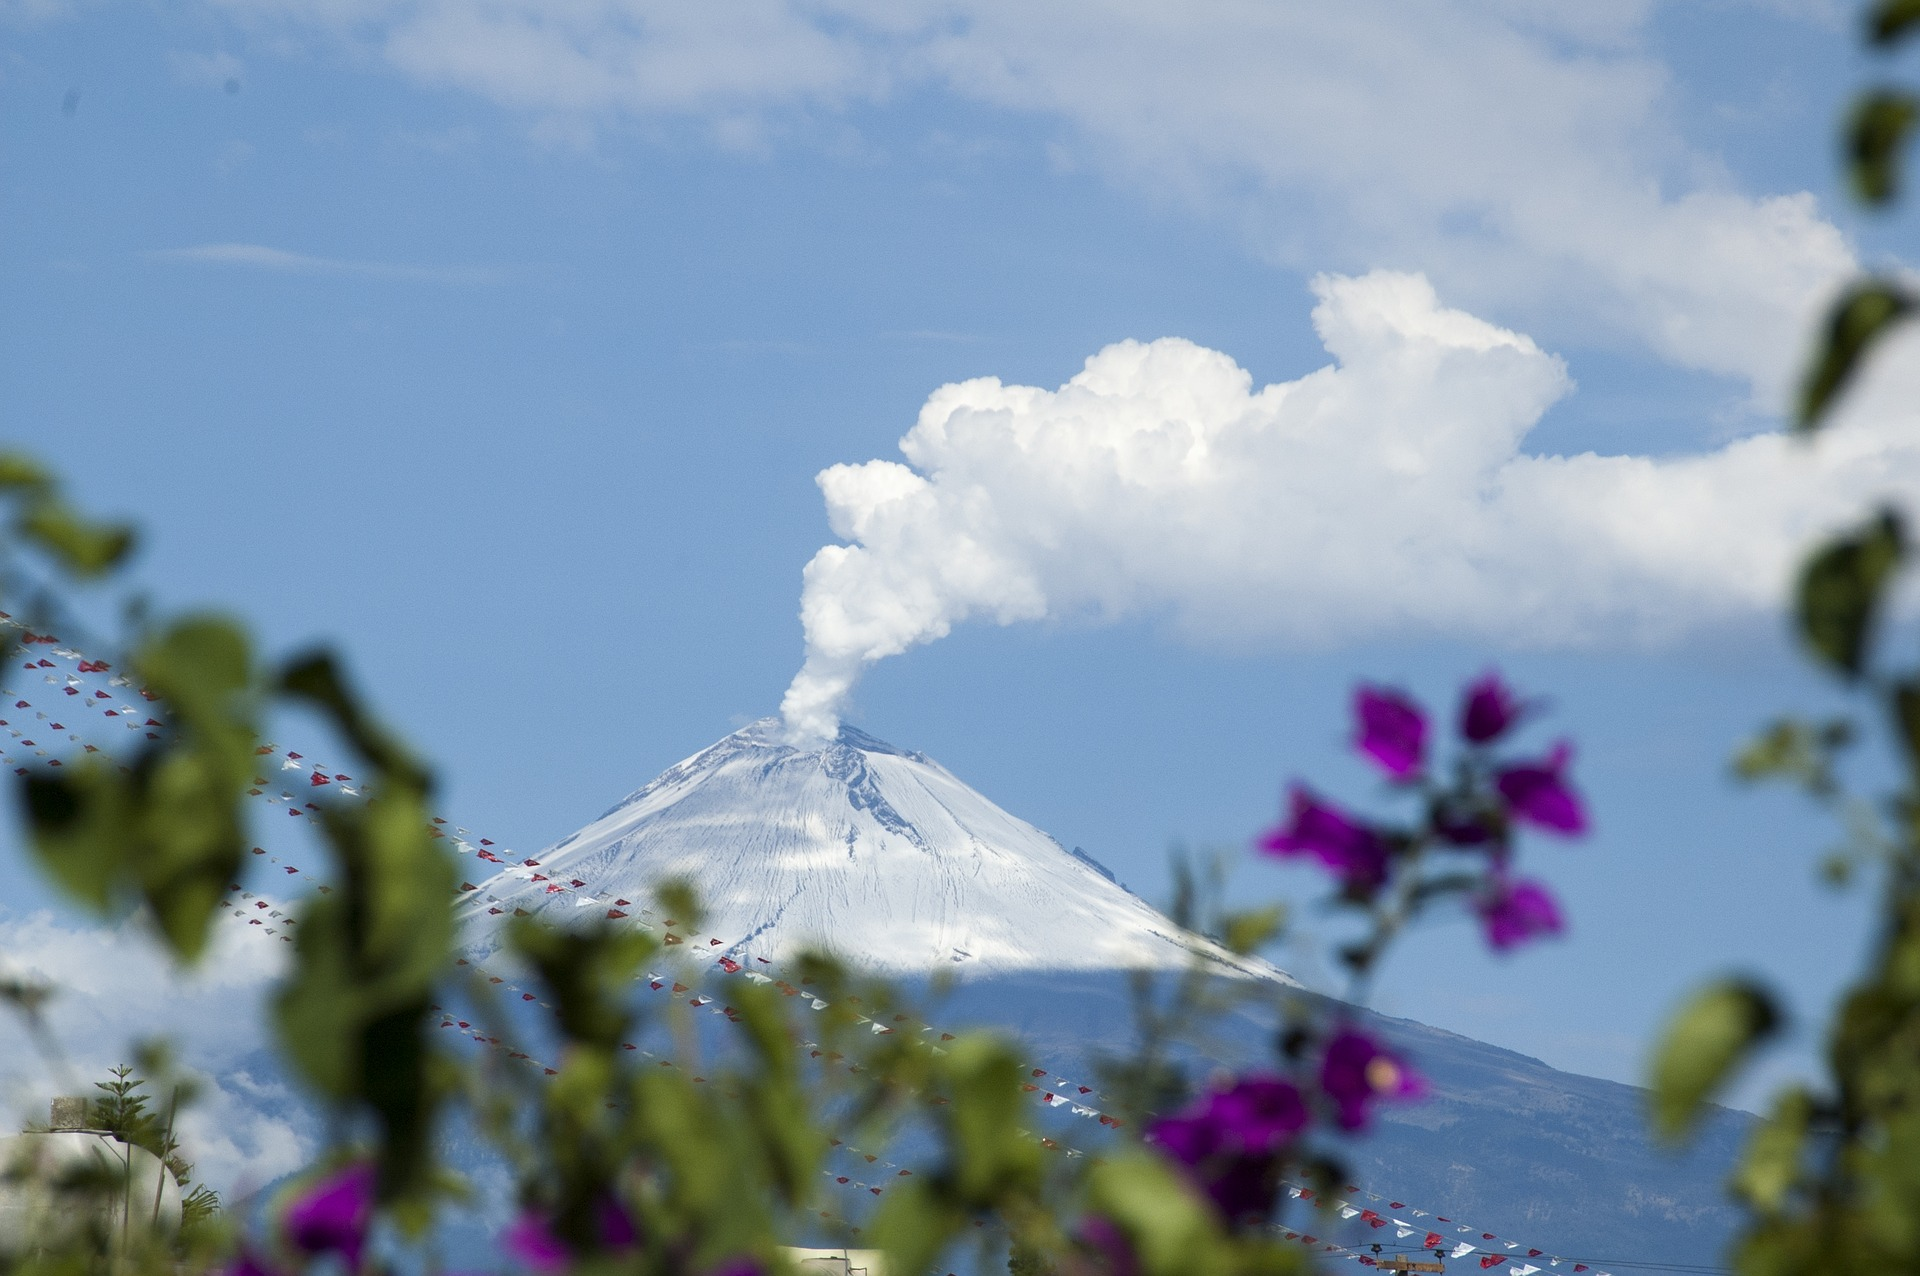 Popocatepetl, crédit photo: christopheducoin de Pixabay